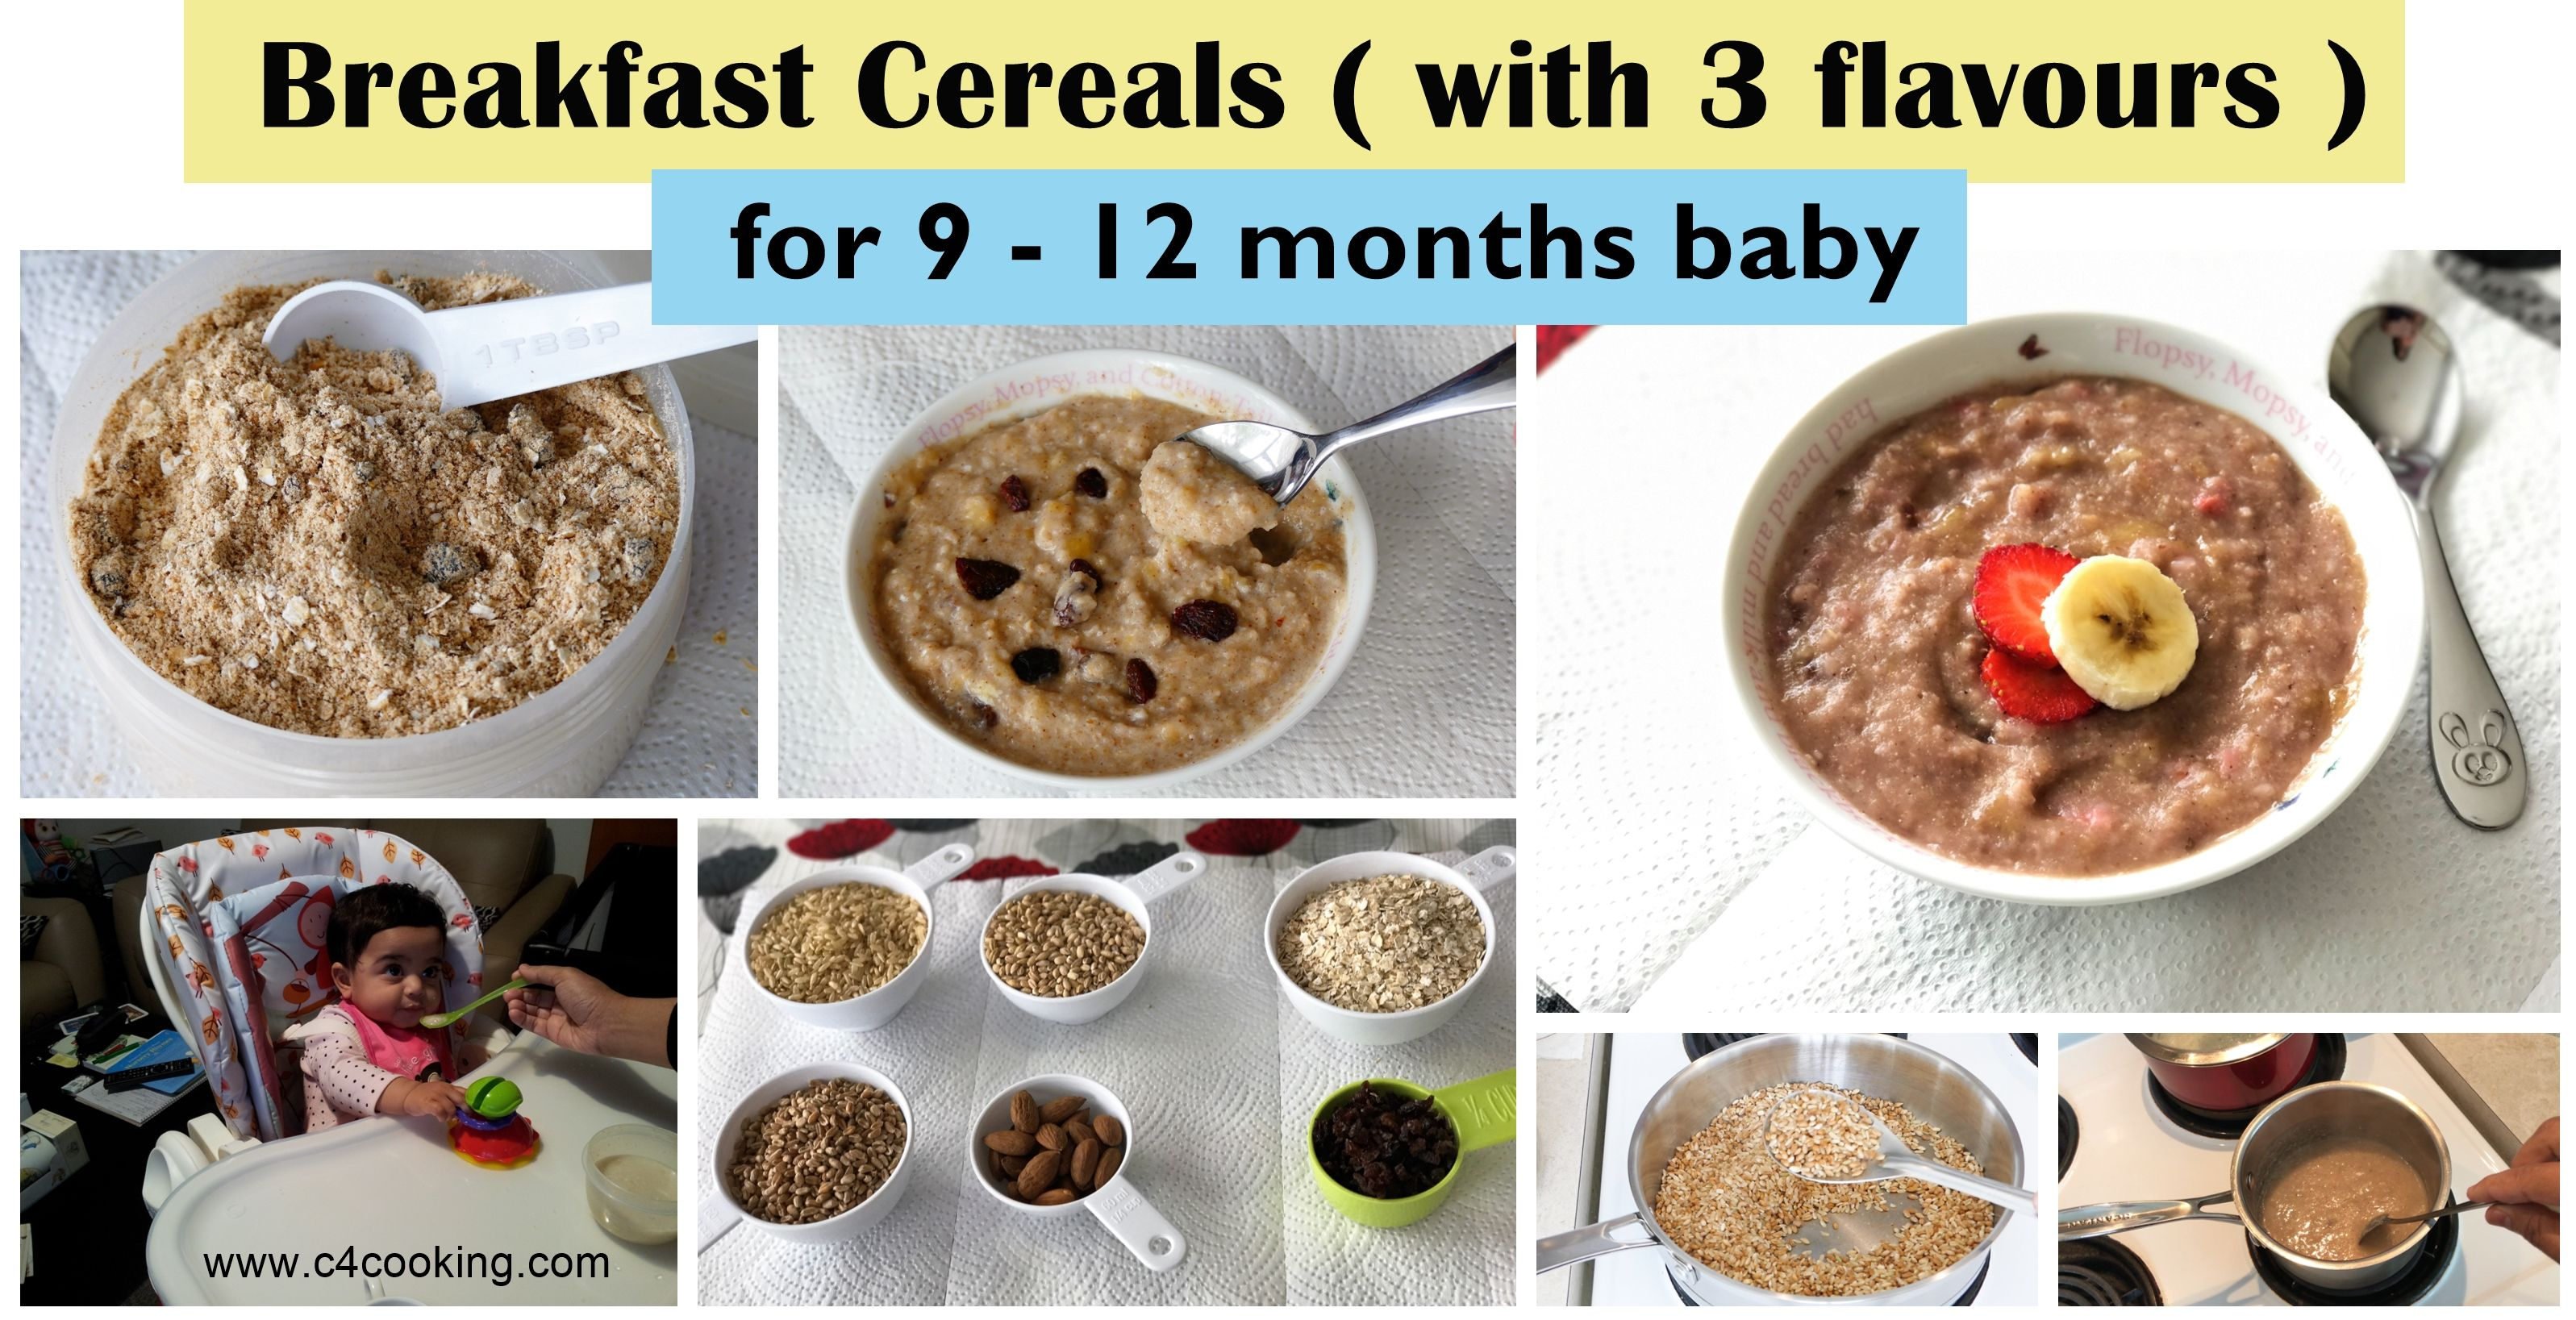 homemade cereal for 9 - 12 months baby, breakfast cereal ...